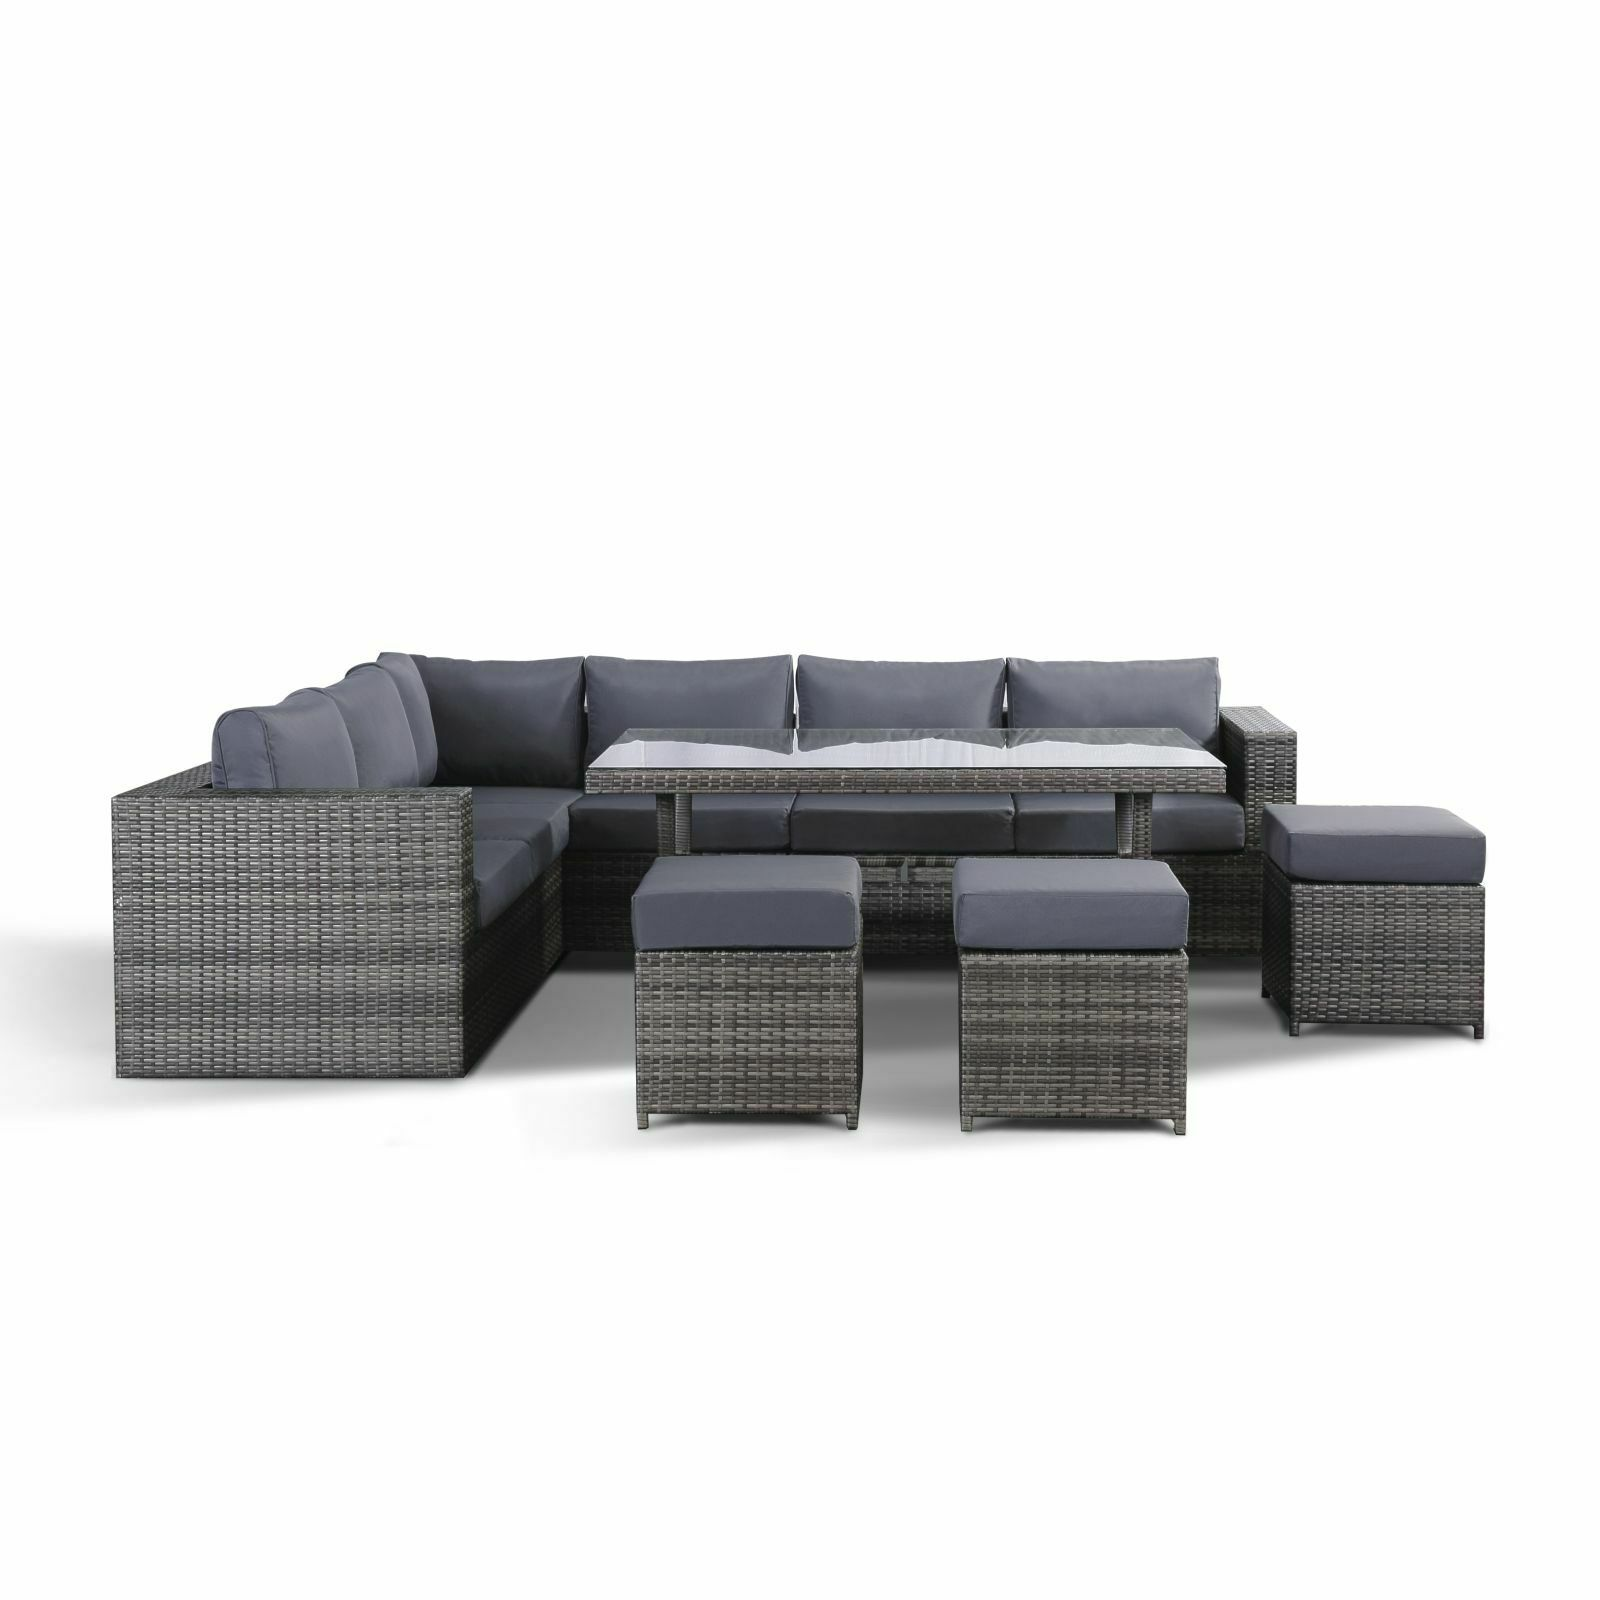 Layla Grey Garden Furniture Corner Sofa Dining Table 3 Stools And Cover Set Ebay